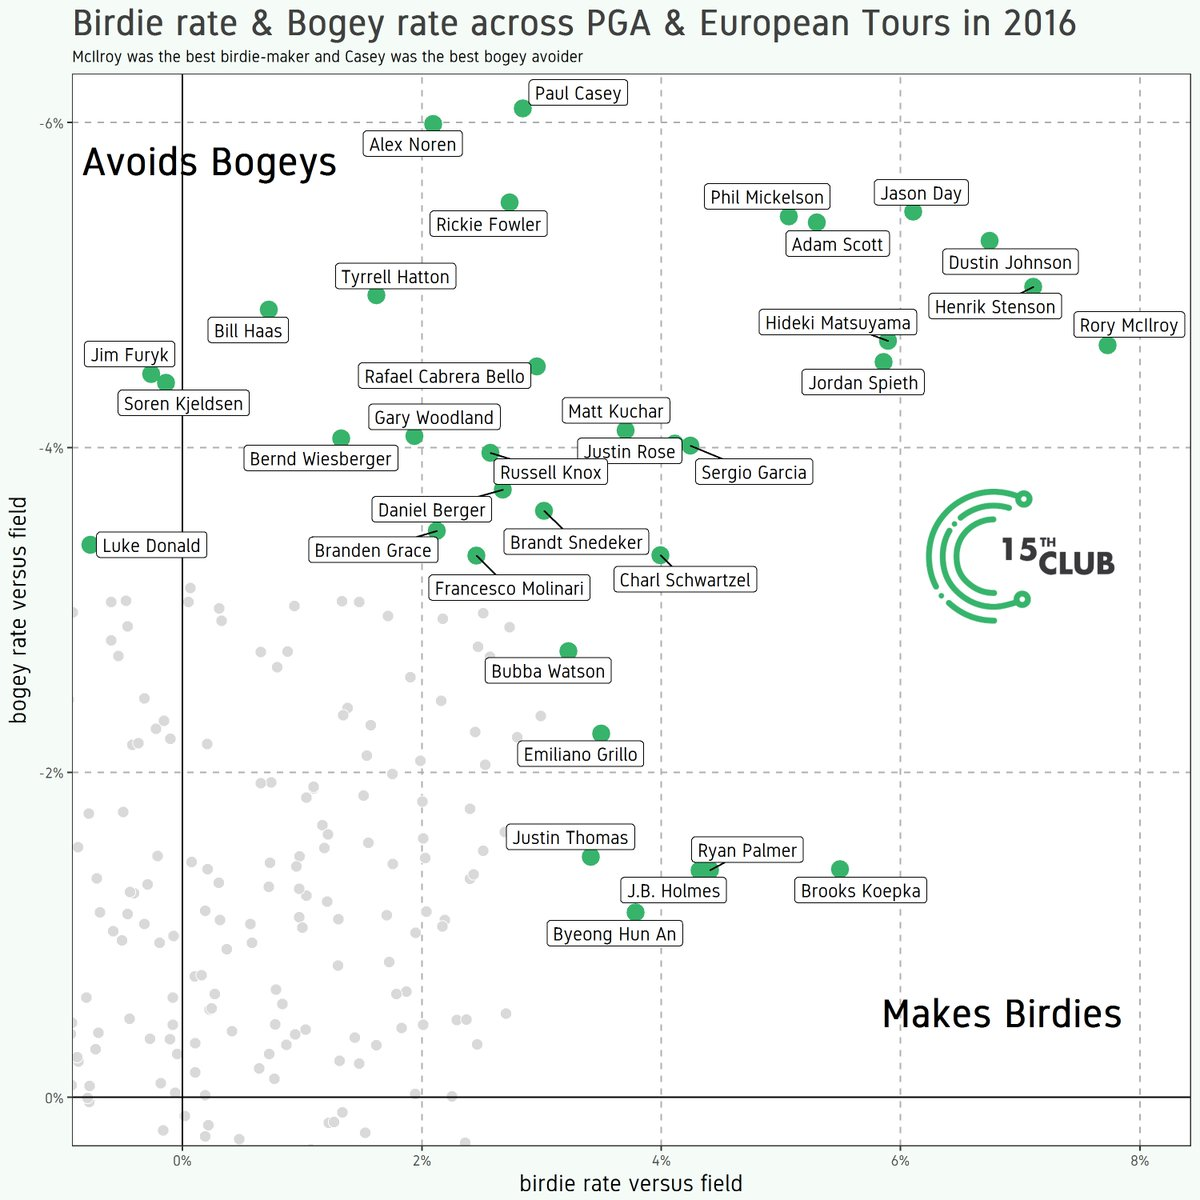 Birdie or better rate & bogey or worse rate for the elite golfers in 2016.